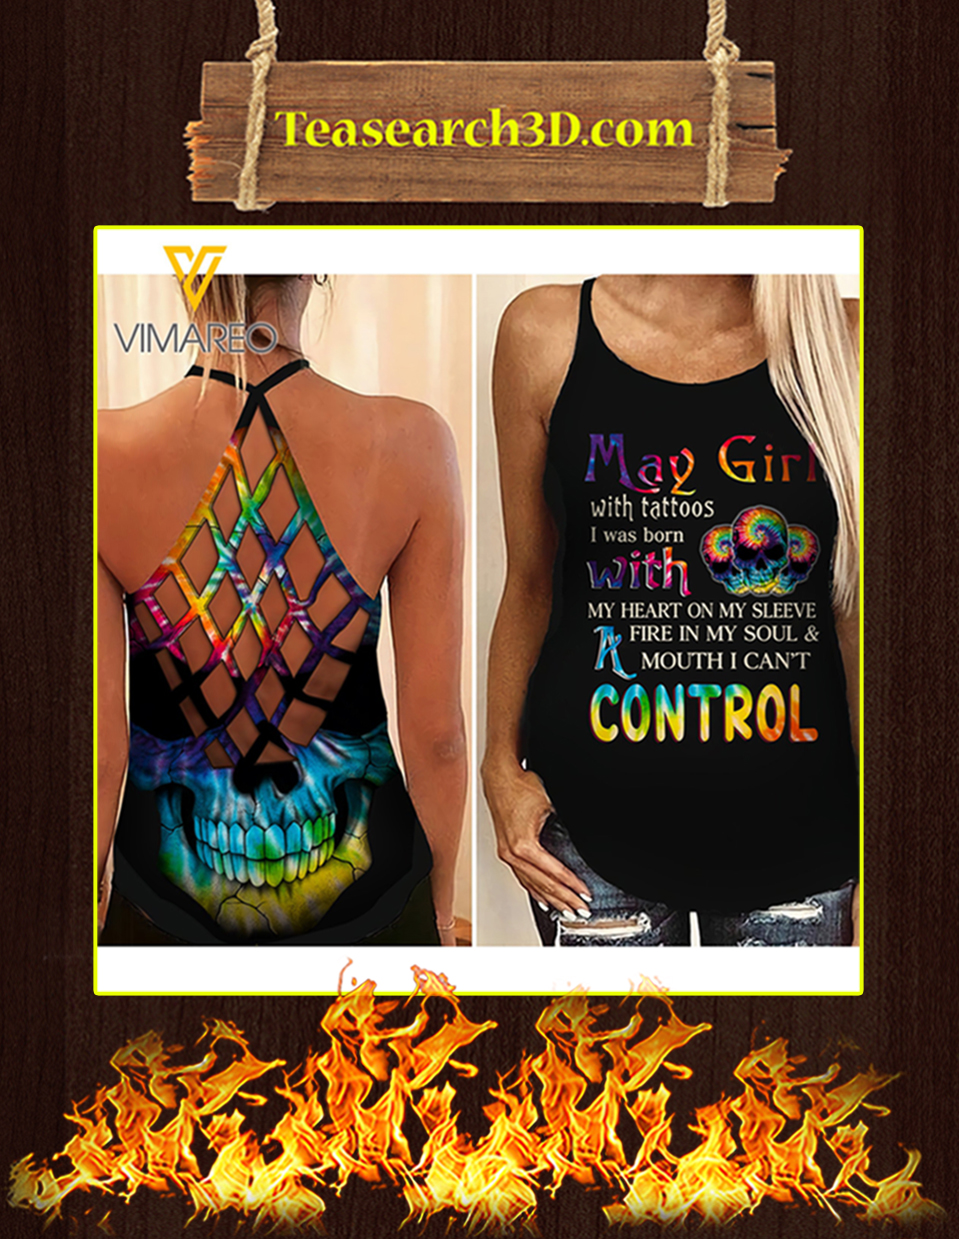 May girl with tattoos criss cross open back camisole tank top 2